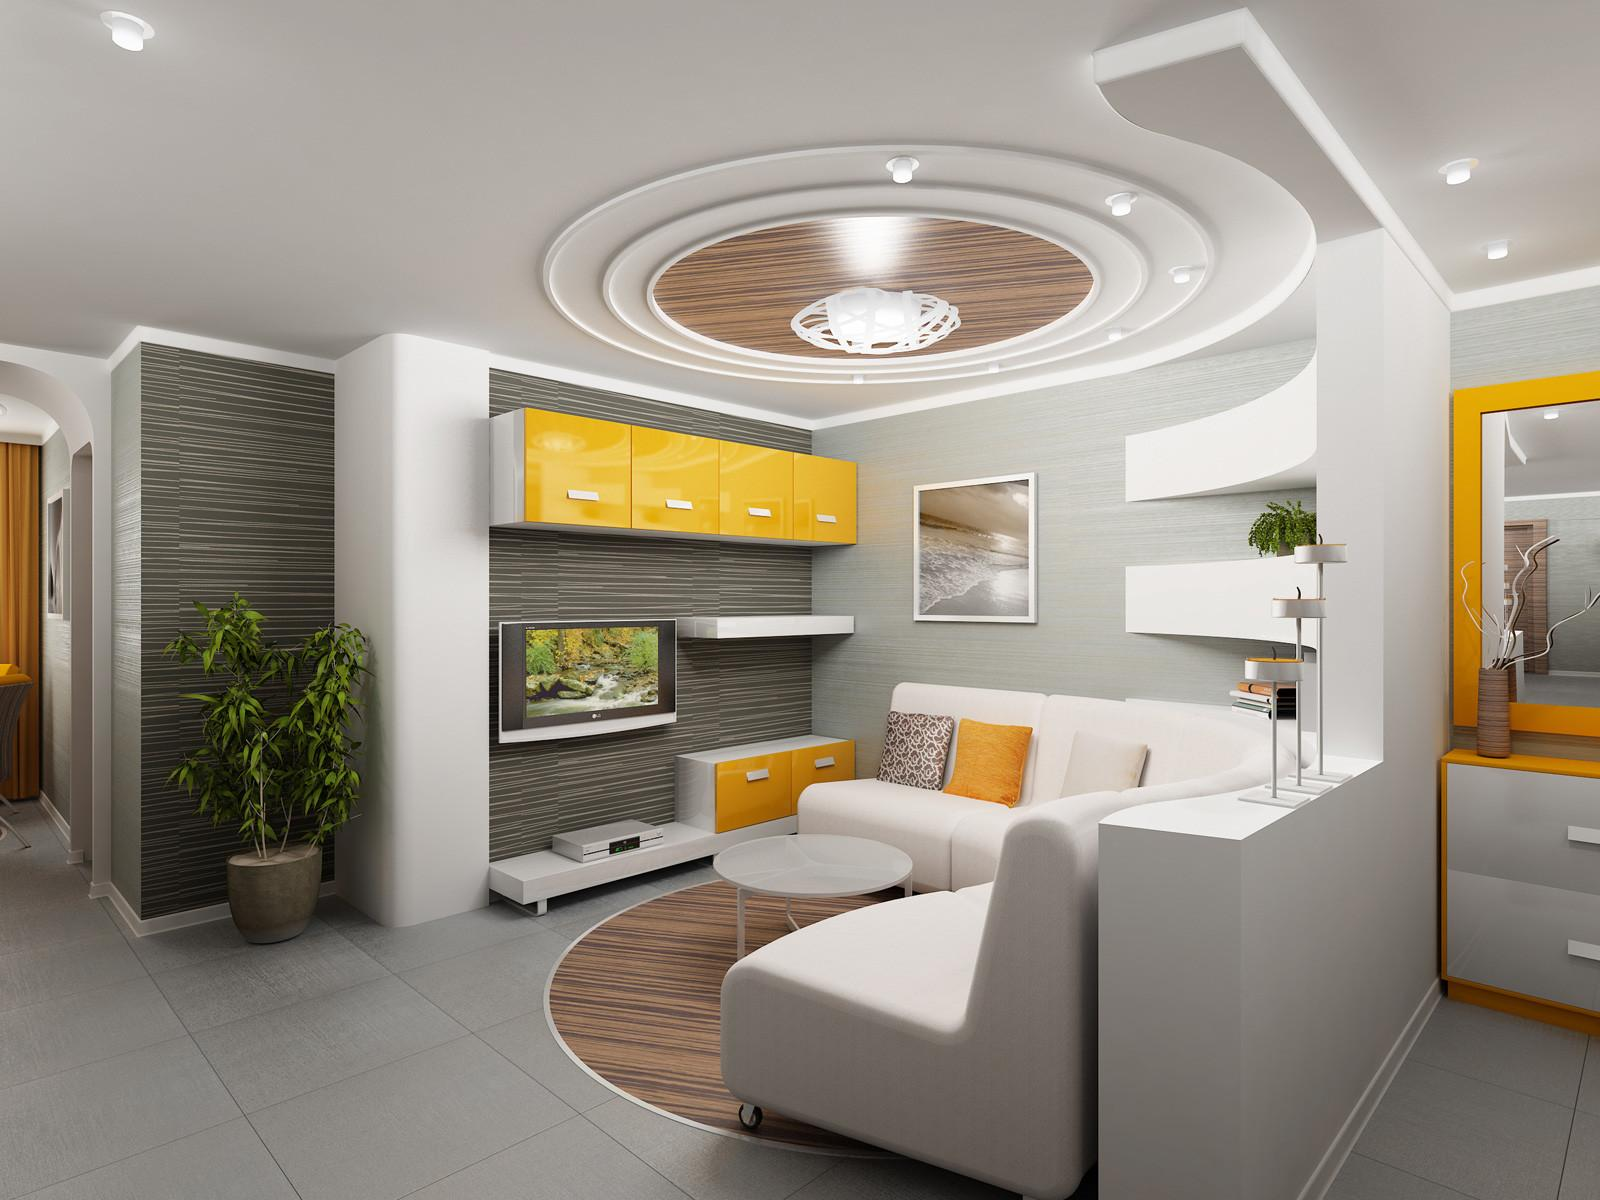 Ceiling Designs Styles Your Home Homedee